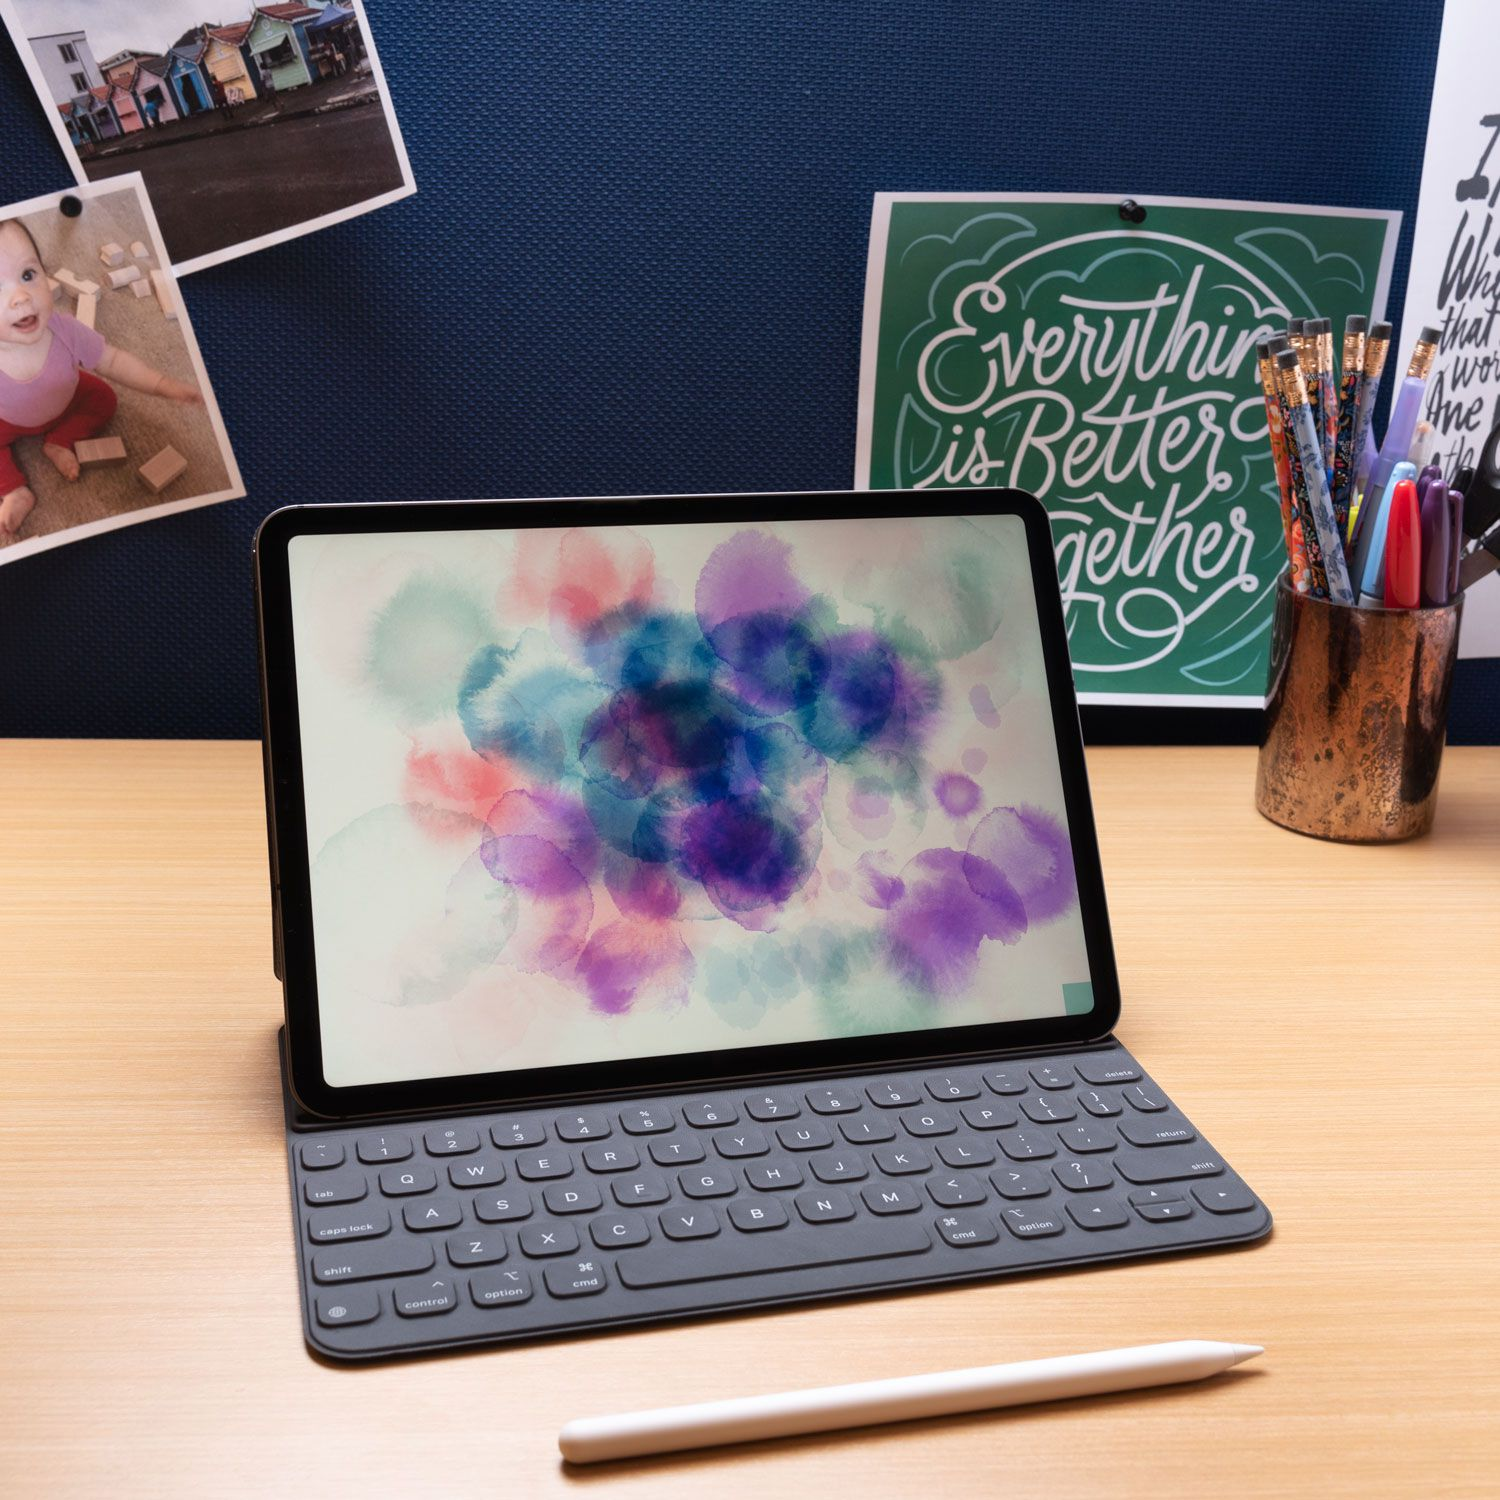 Apple iPad Pro 2018 11inch Review The Best on the Market